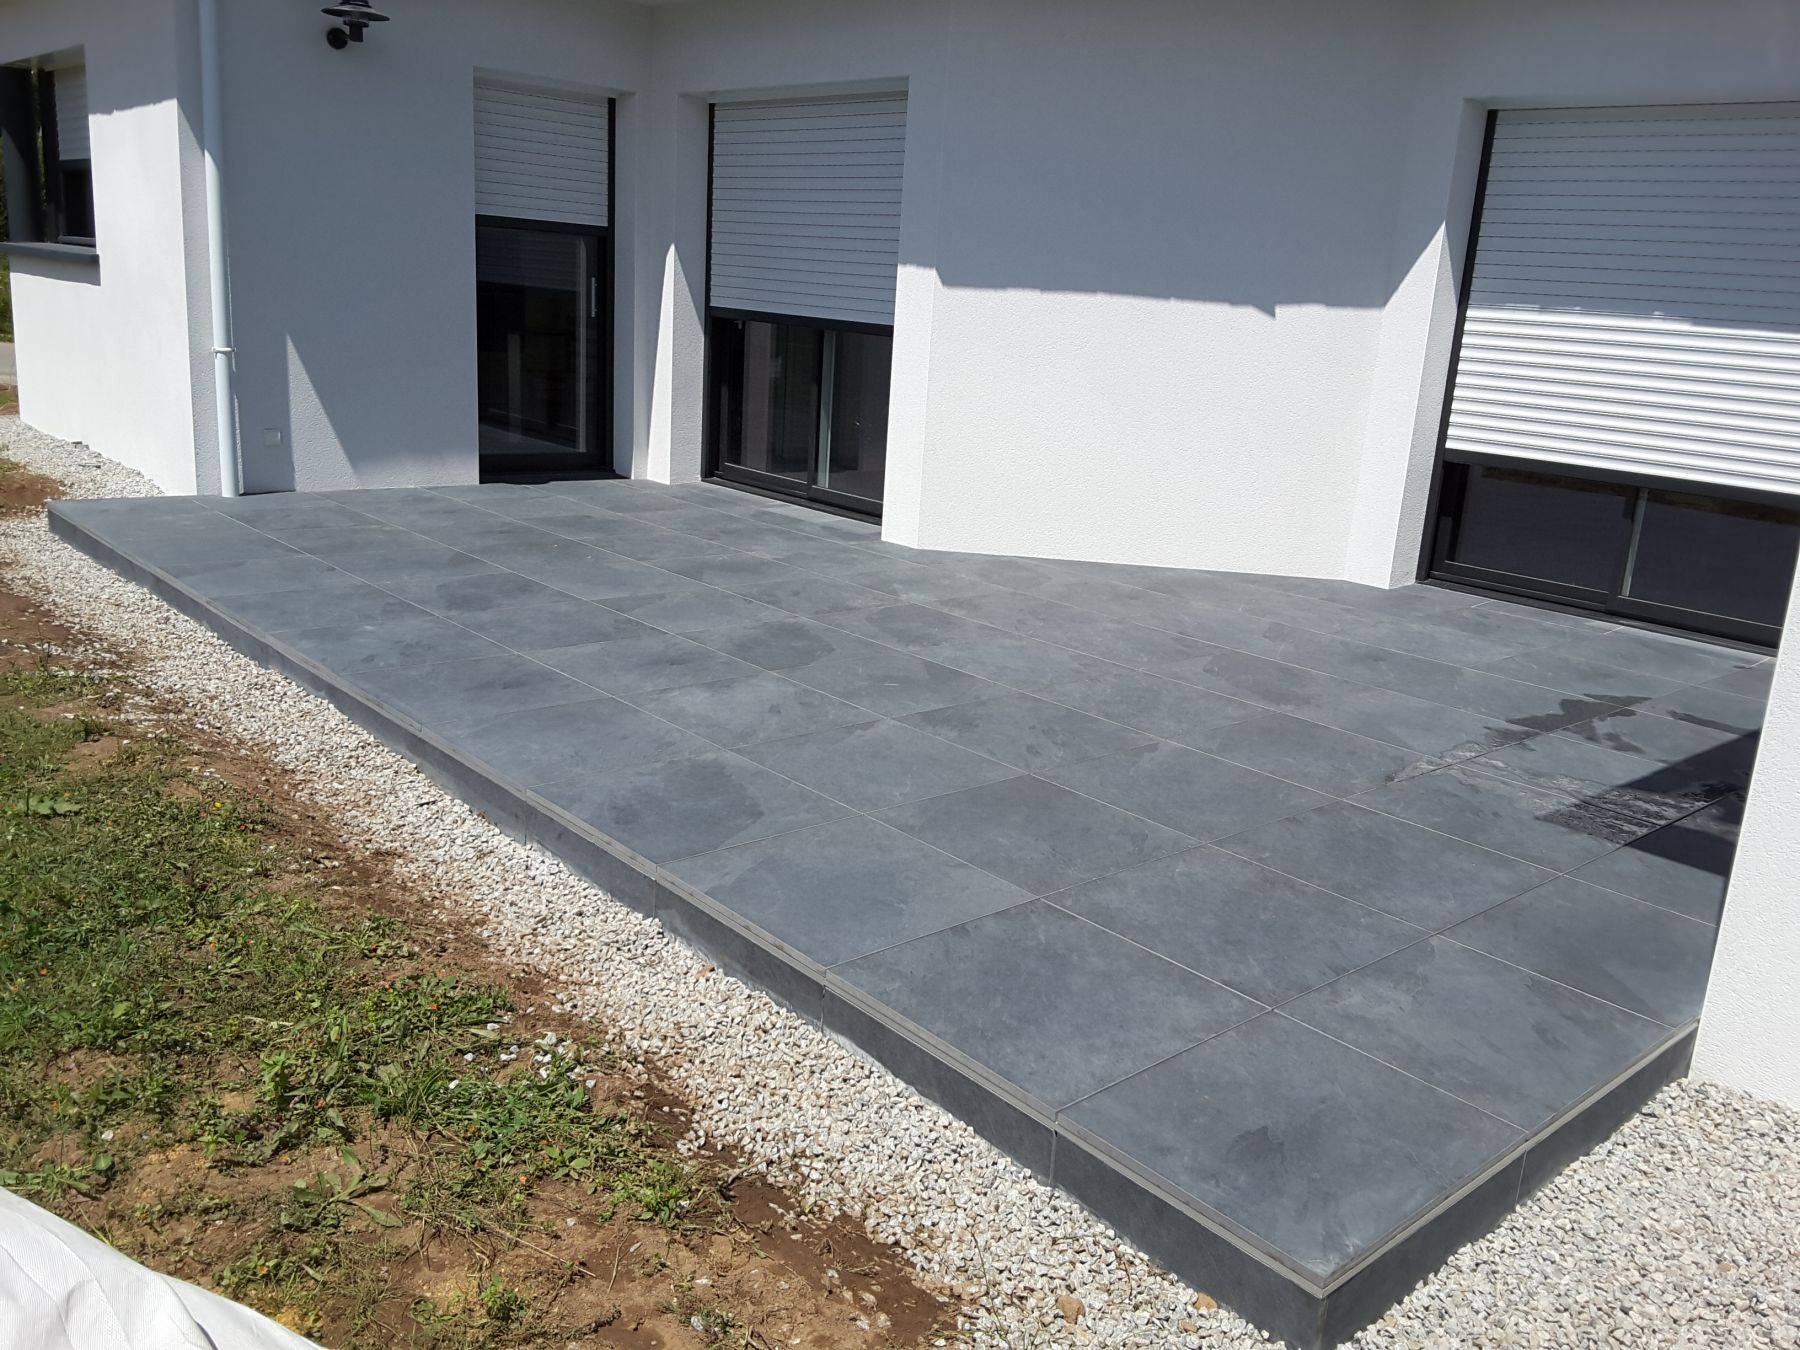 Carrelage design carrelage sur plot moderne design for Pose carrelage exterieur sur plots